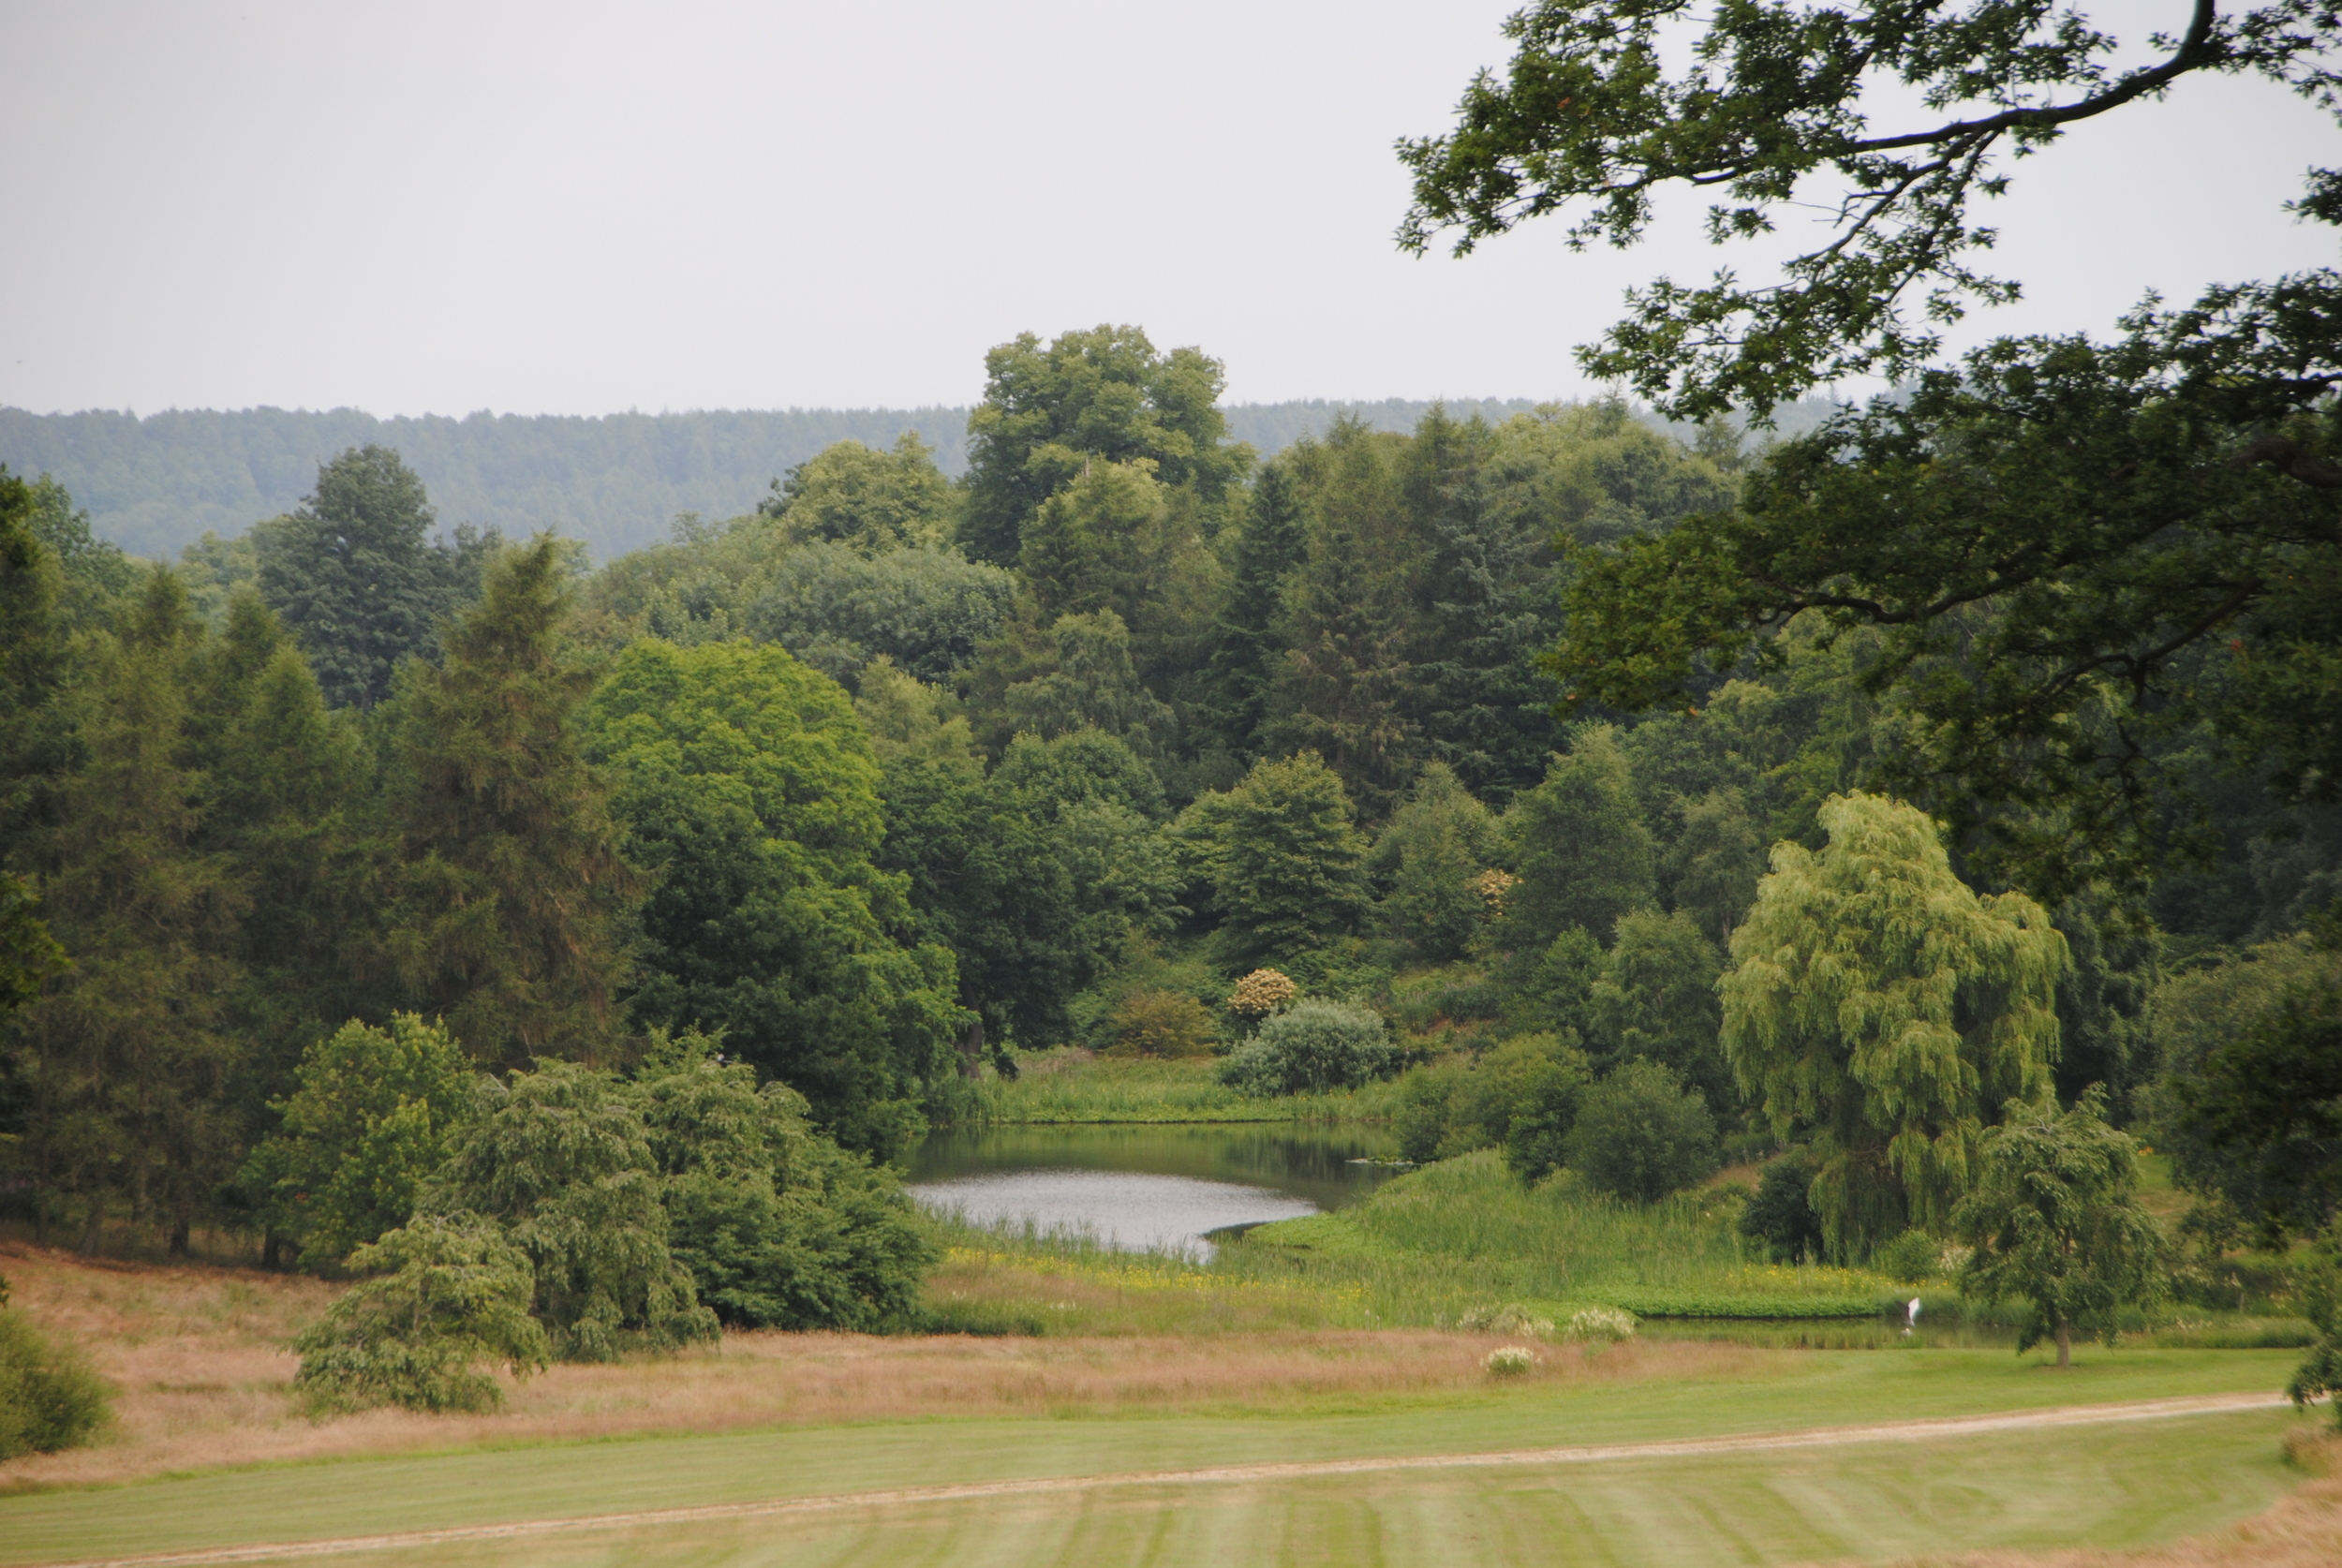 One of many spectacular views at the Yorkshire Arboretum.